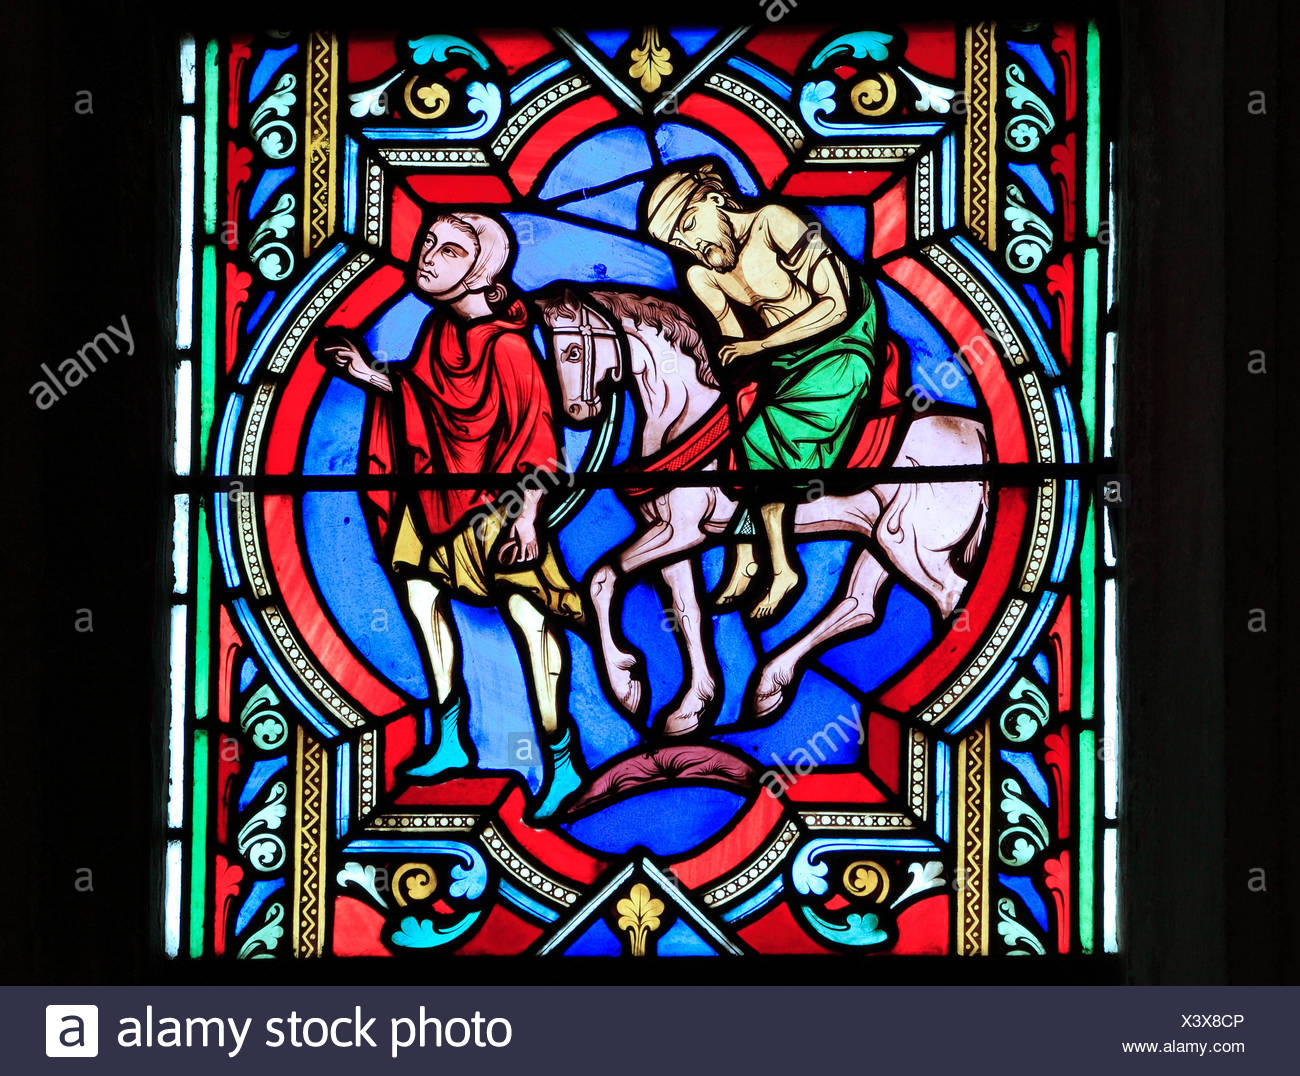 The Good Samaritan Parable,  Samaritan carries the injured traveller on his horse, by Oudinot of Paris, 1859, Feltwell, Norfolk, England, UK - Stock Image